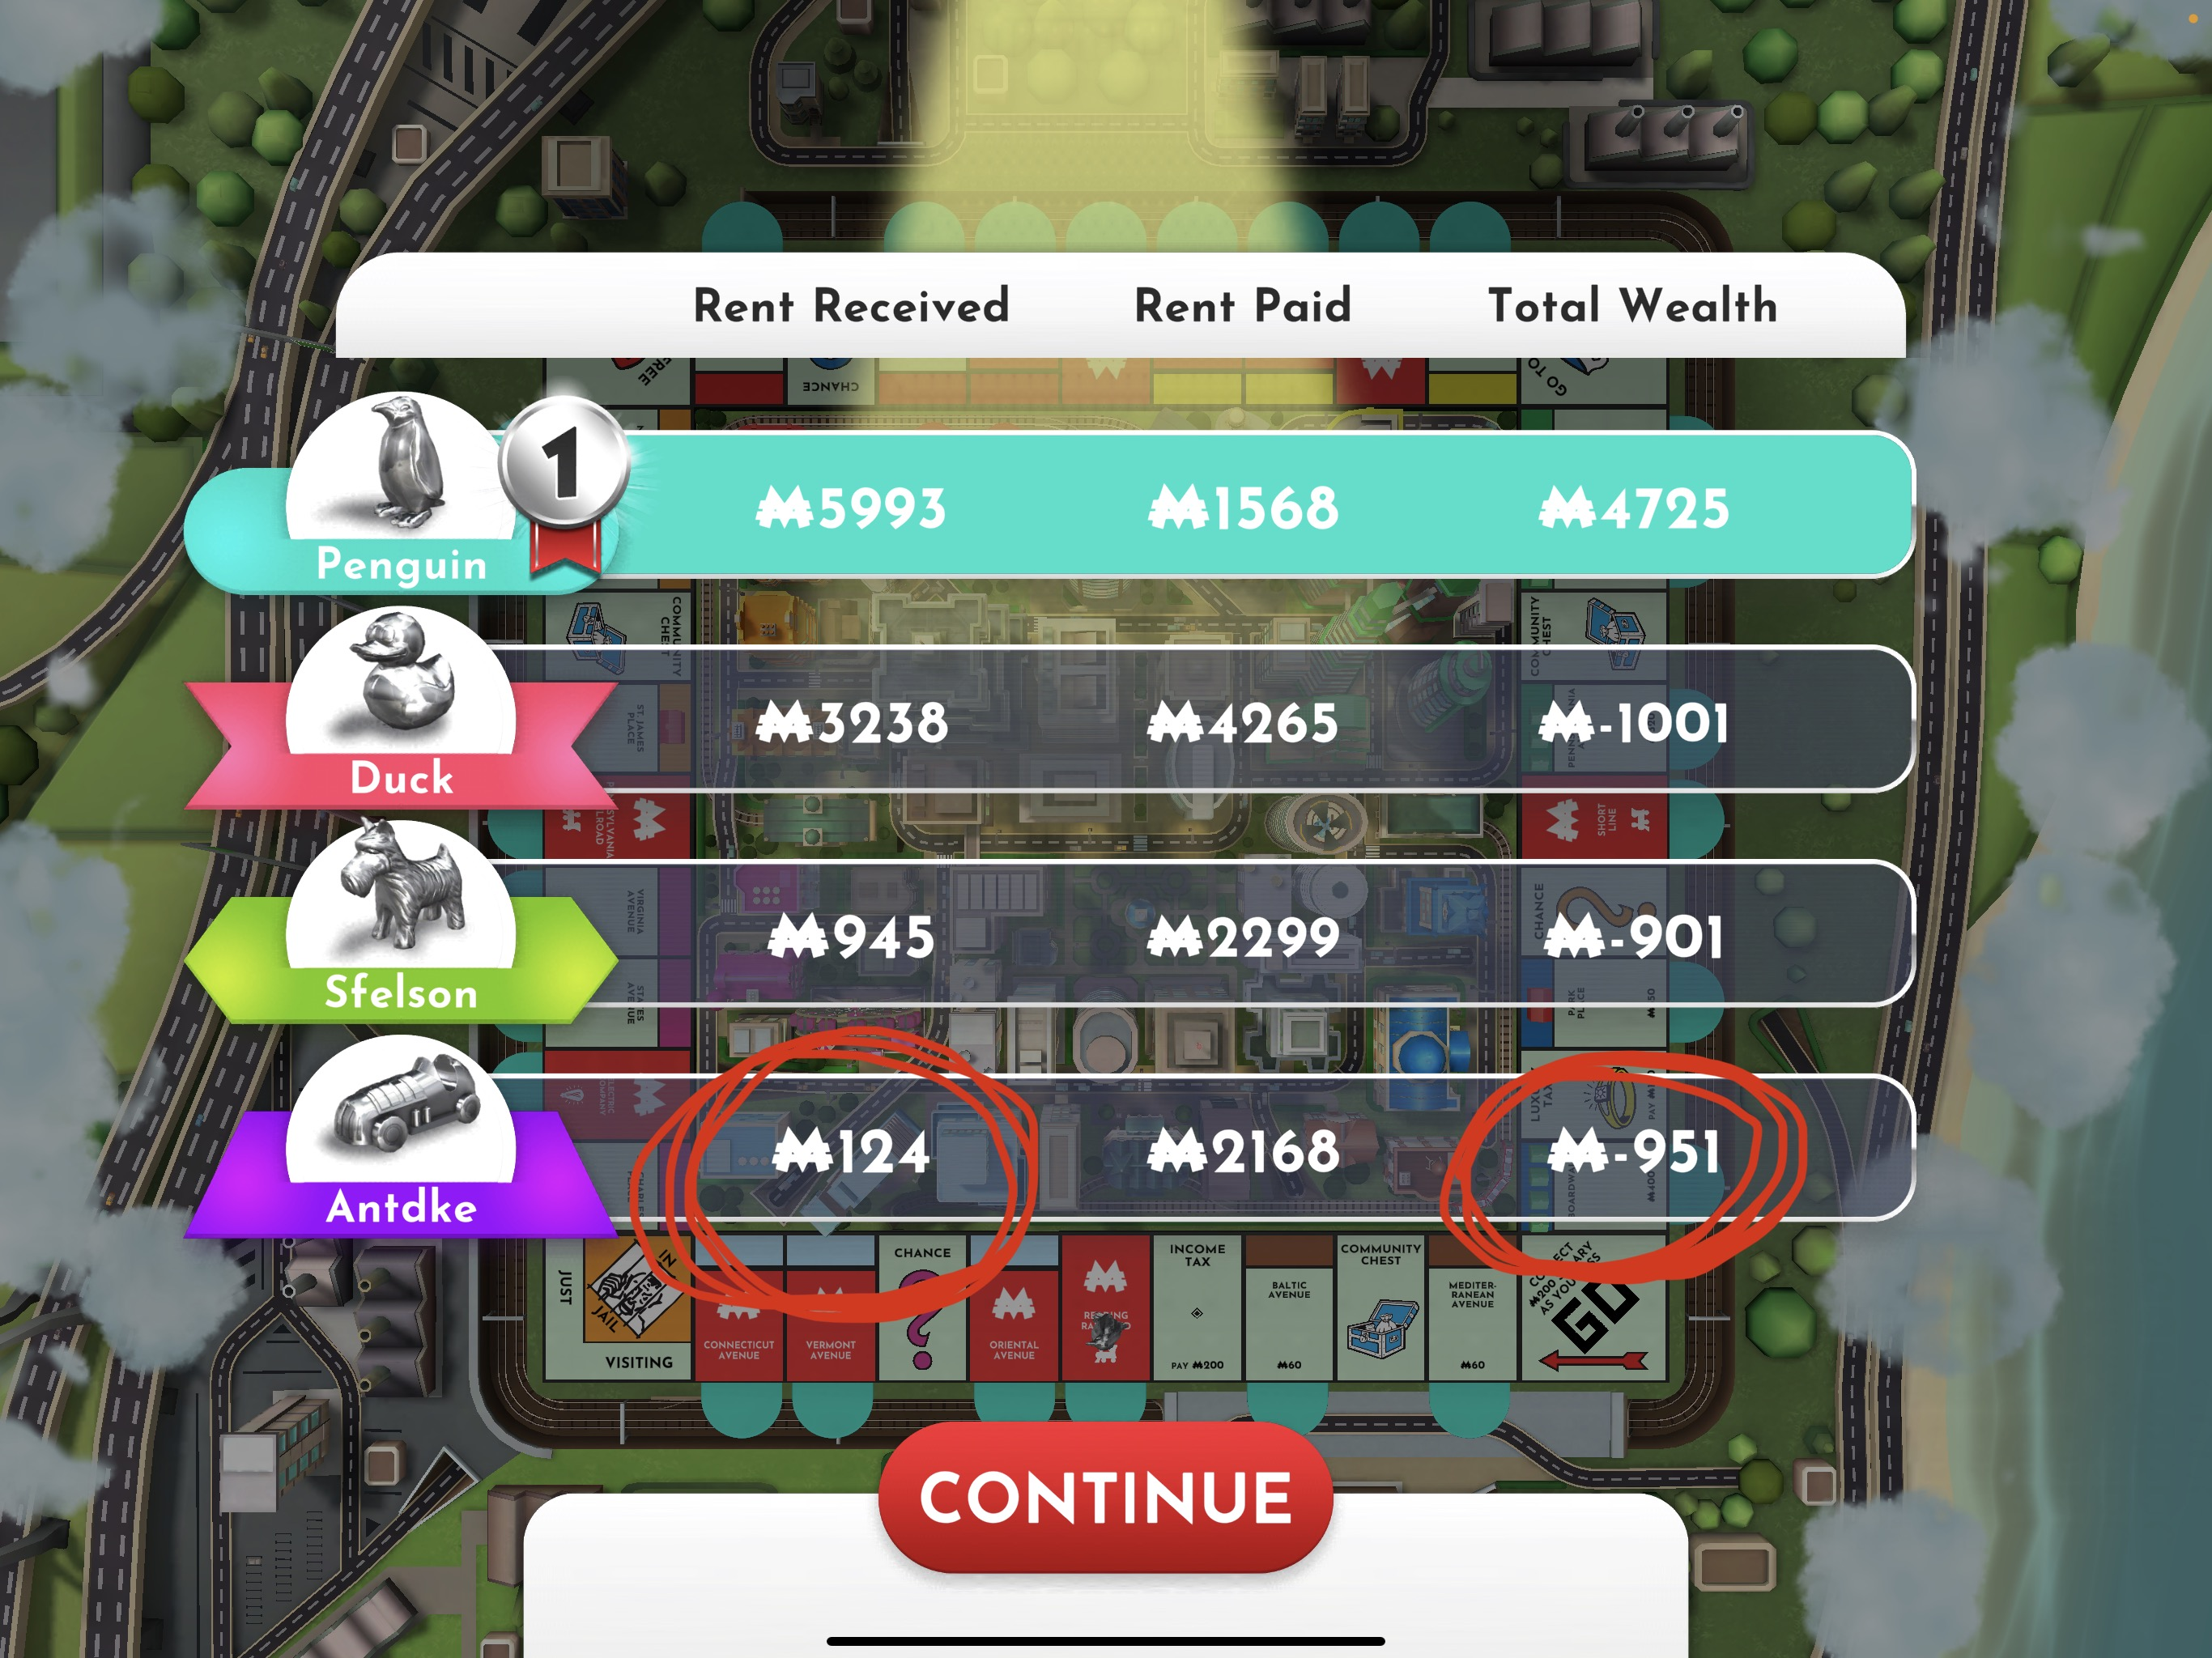 monopoly end game screen where I built the least amount of wealth and made the least money from properties